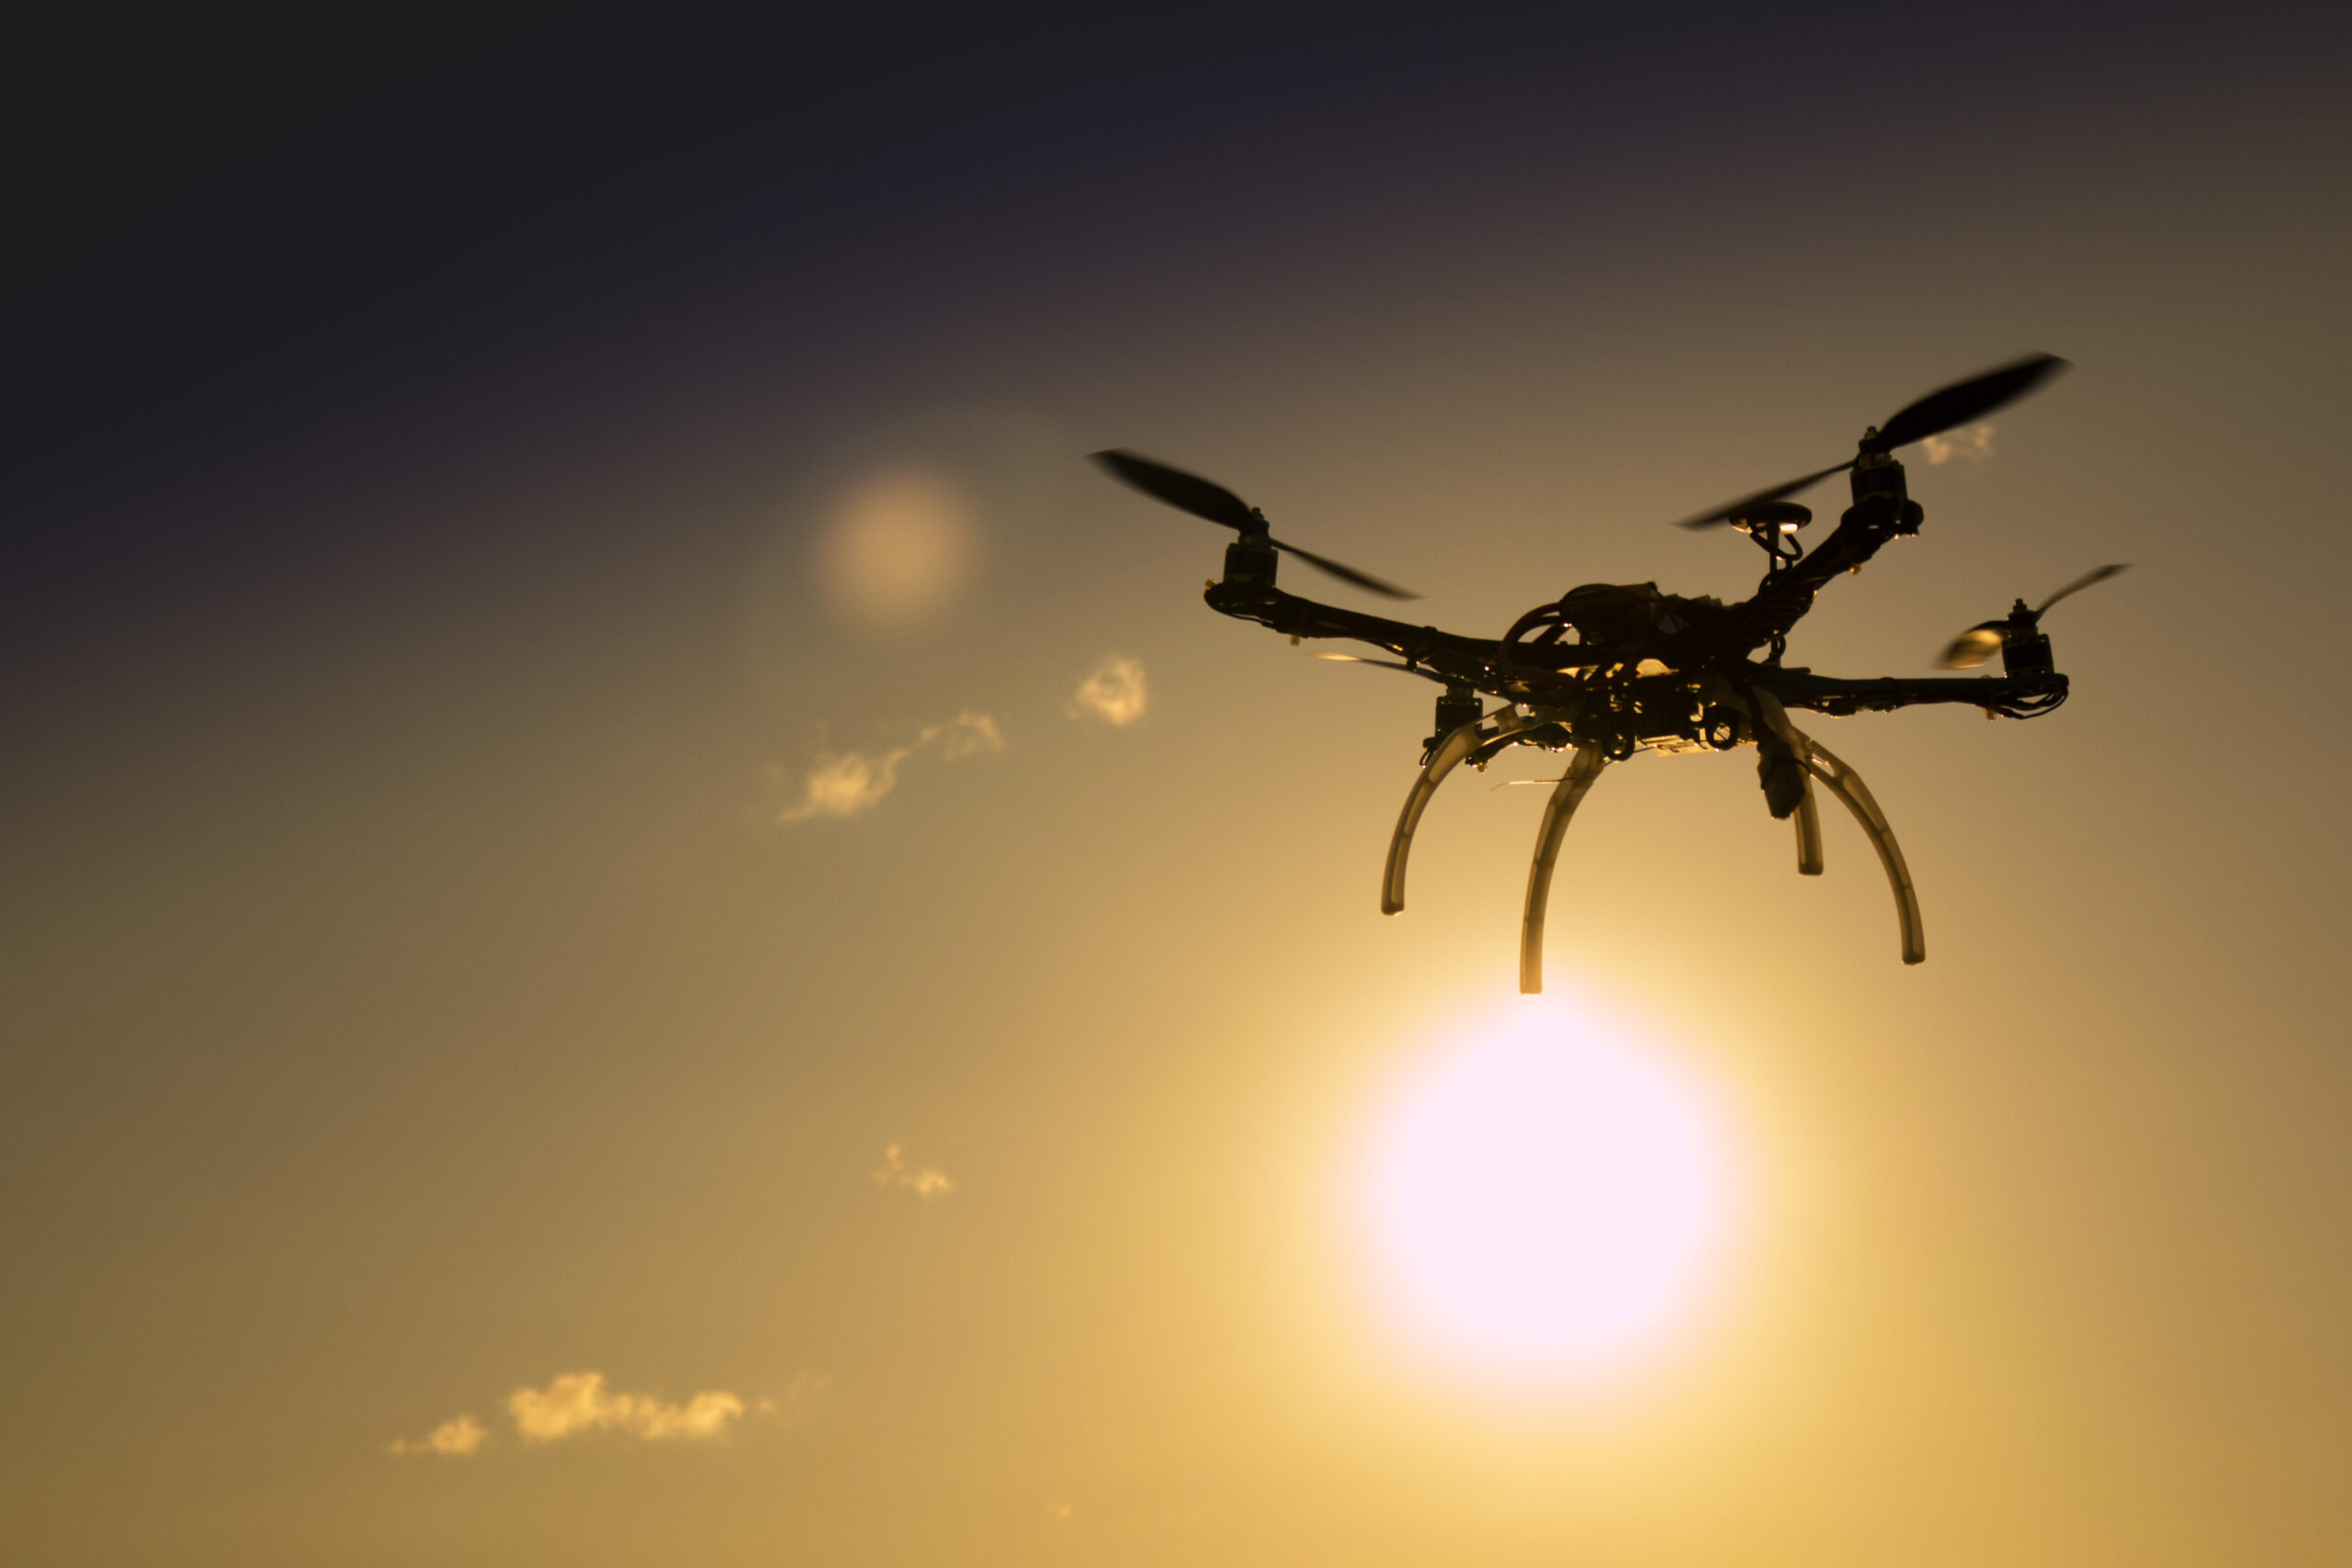 Enter The Drones – FAA required to make room for UAVs by 2015